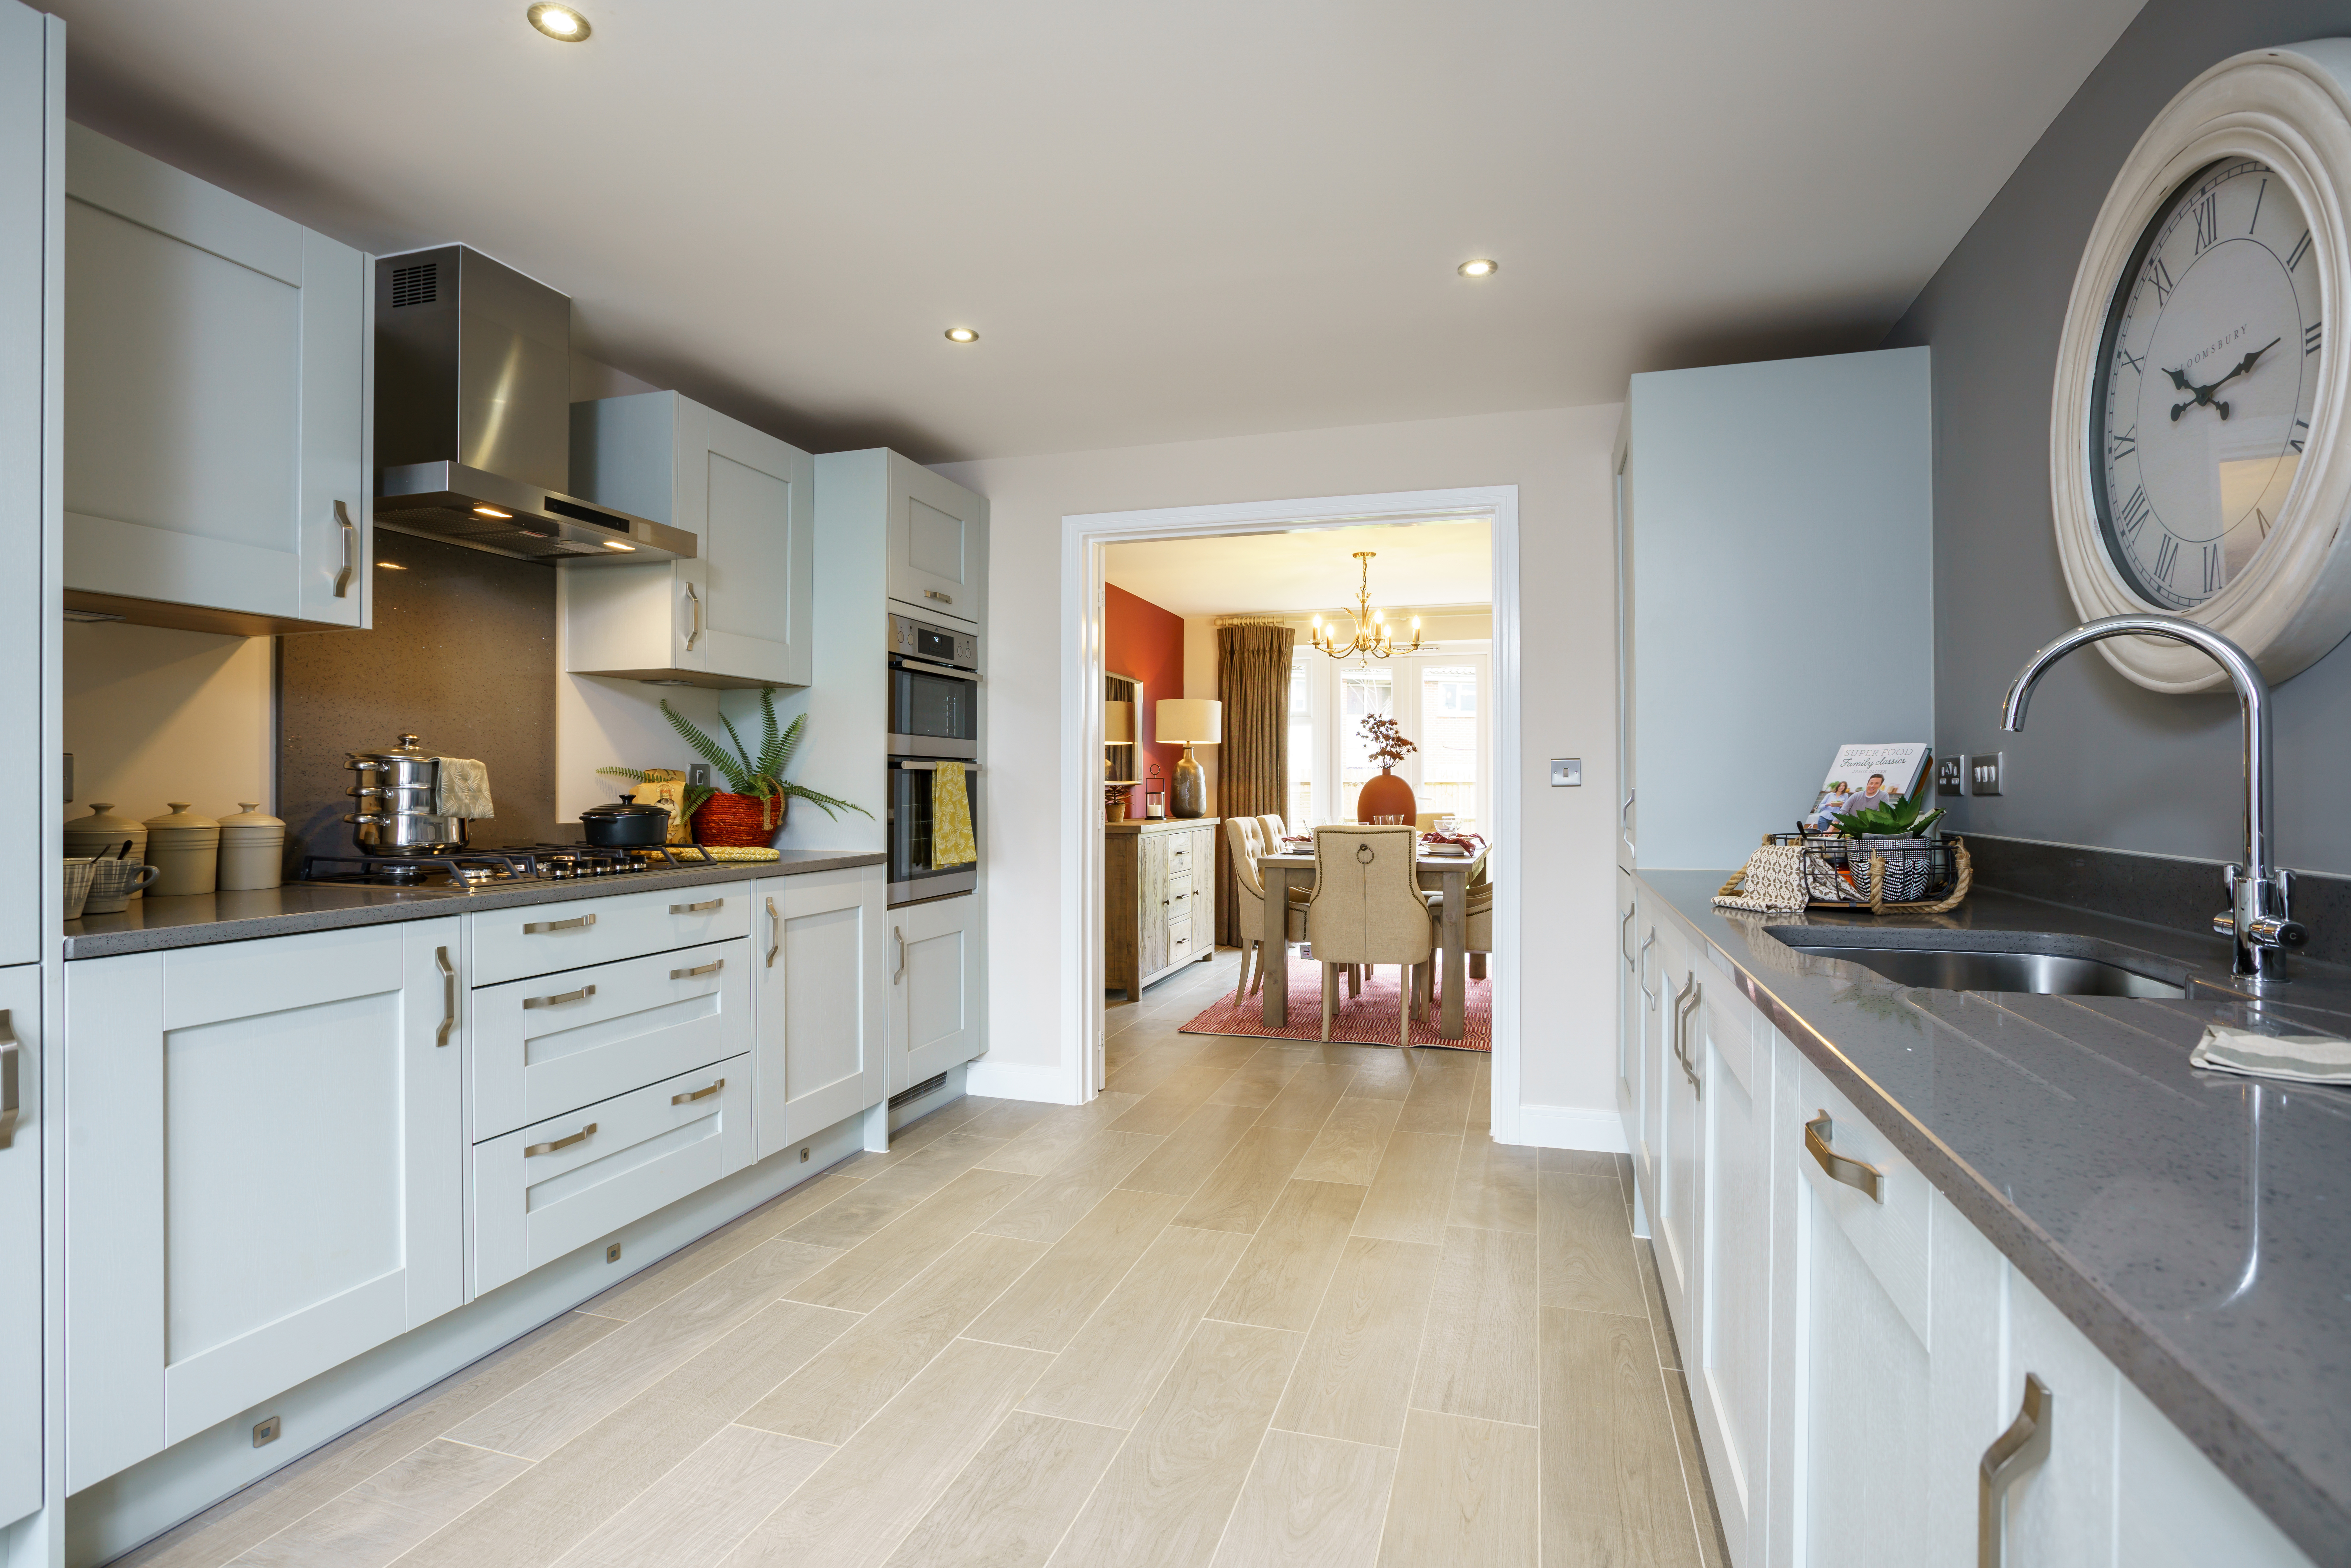 TW_SC_Hedgerows_PA49_Thornford_Kitchen